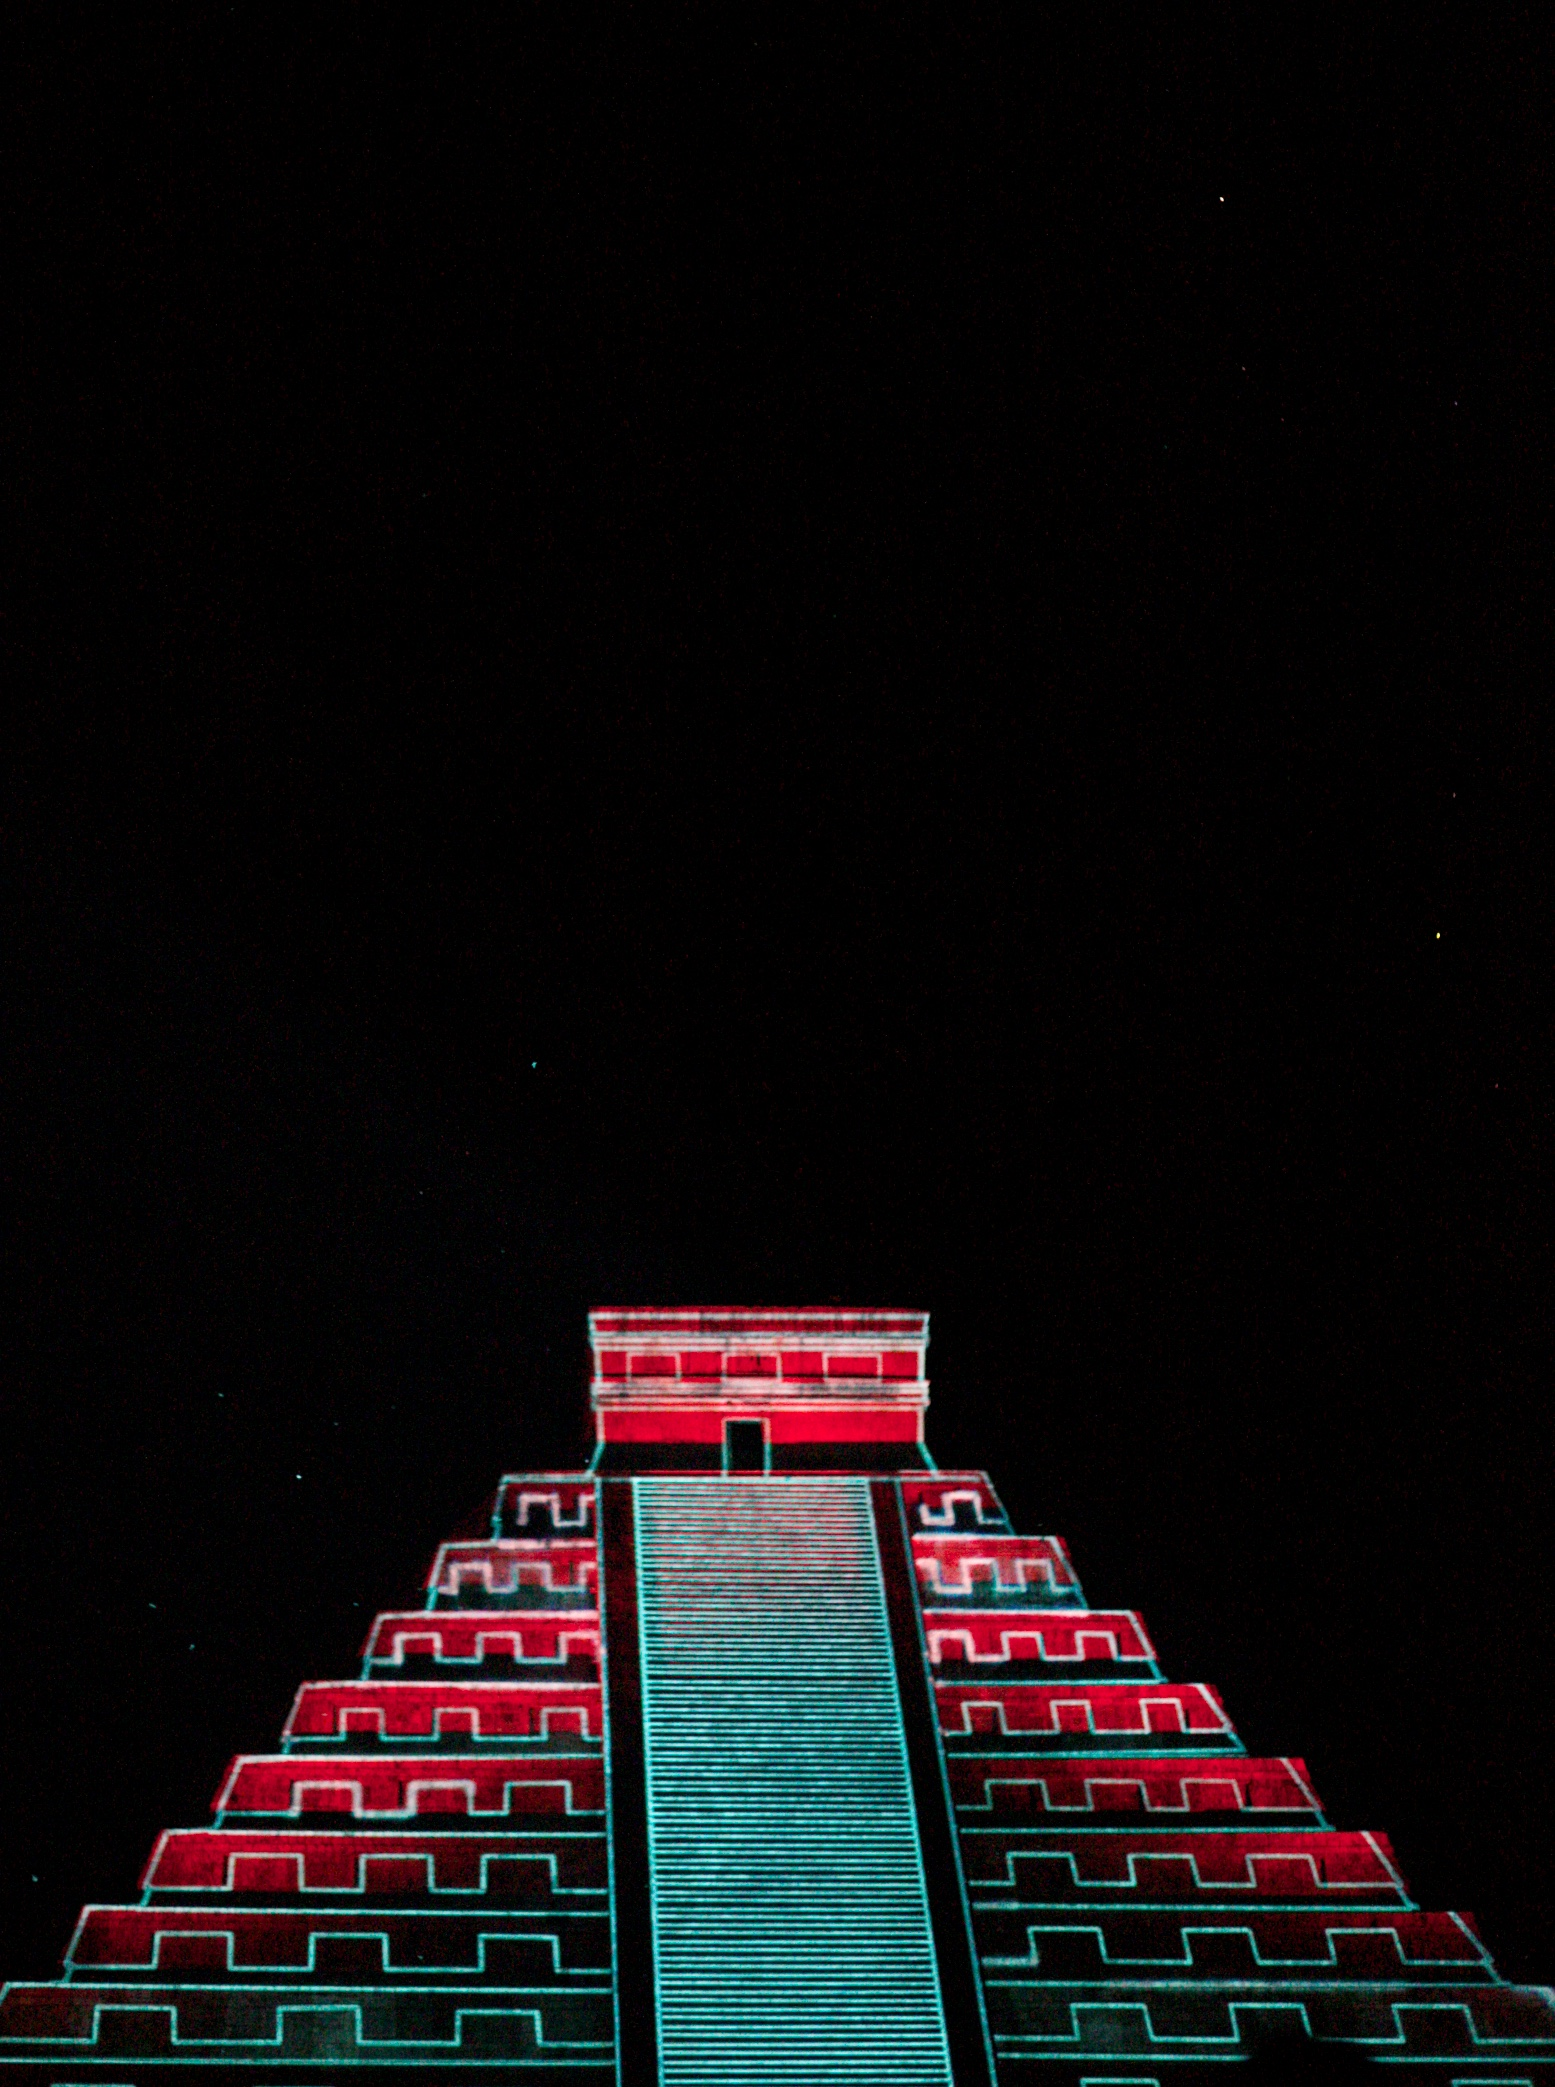 Chichen Itza at night with red lights and mayan patterns.